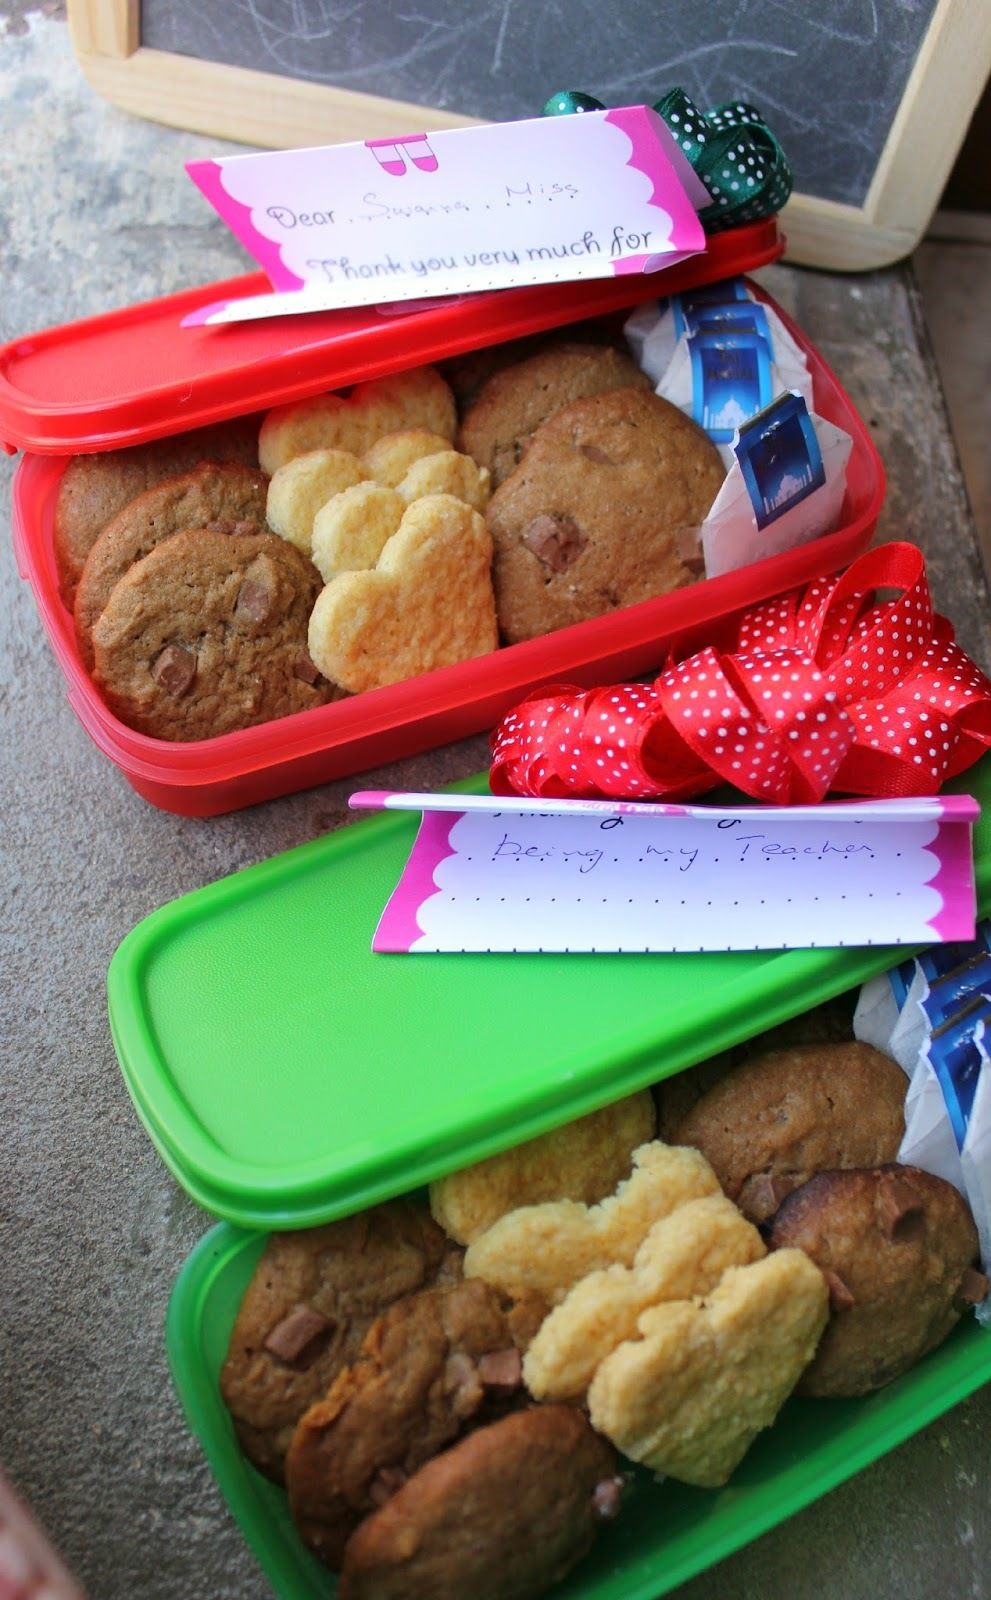 Cookie box – Choco-chip cookies & Eggless Shortbread cookies | Thank you gift for teachers